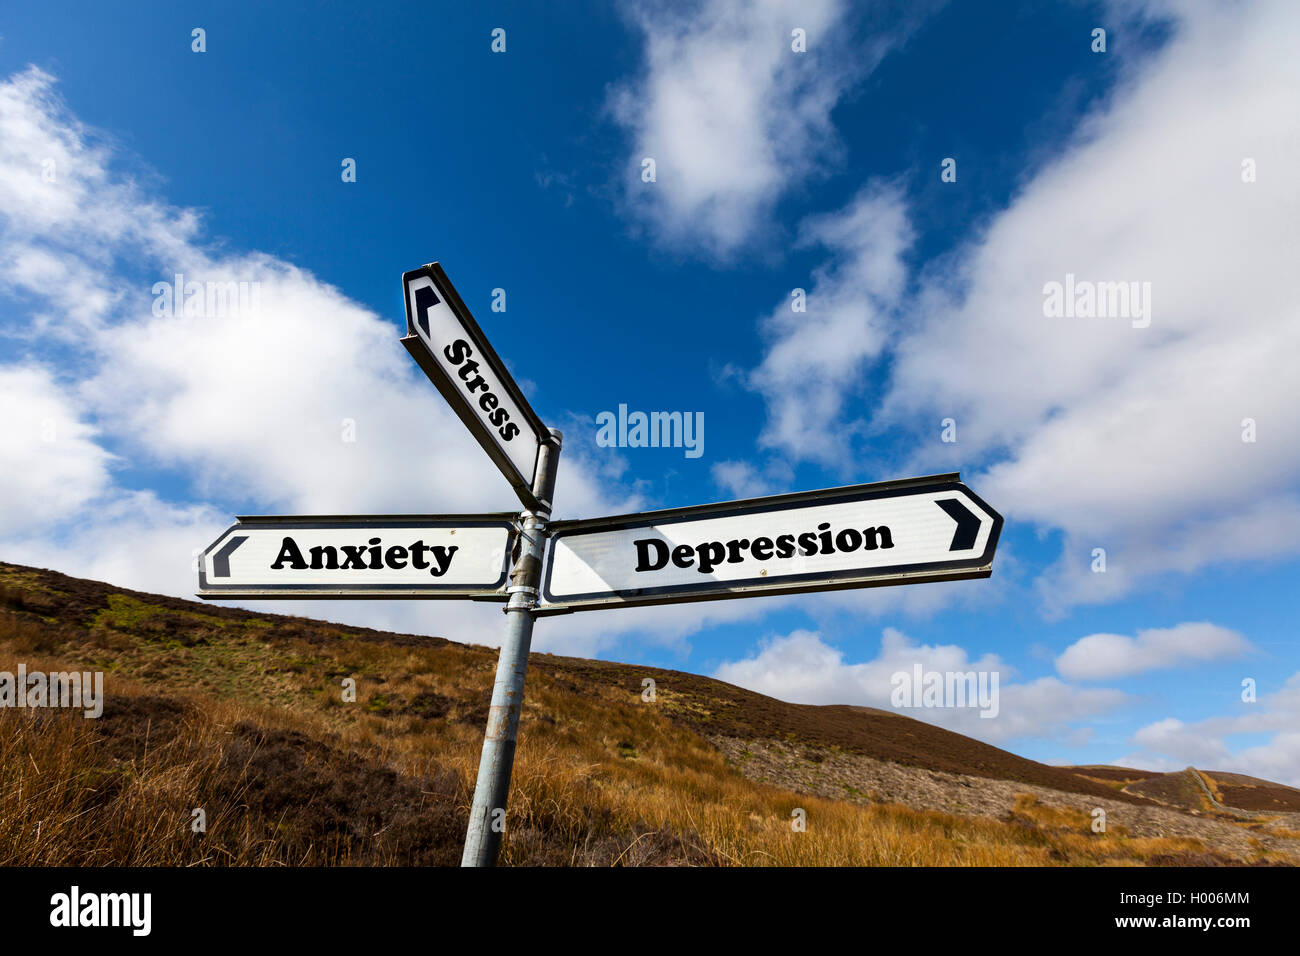 Depression anxiety stress mental health problem problems concept road sign choice choose life direction future concepts - Stock Image